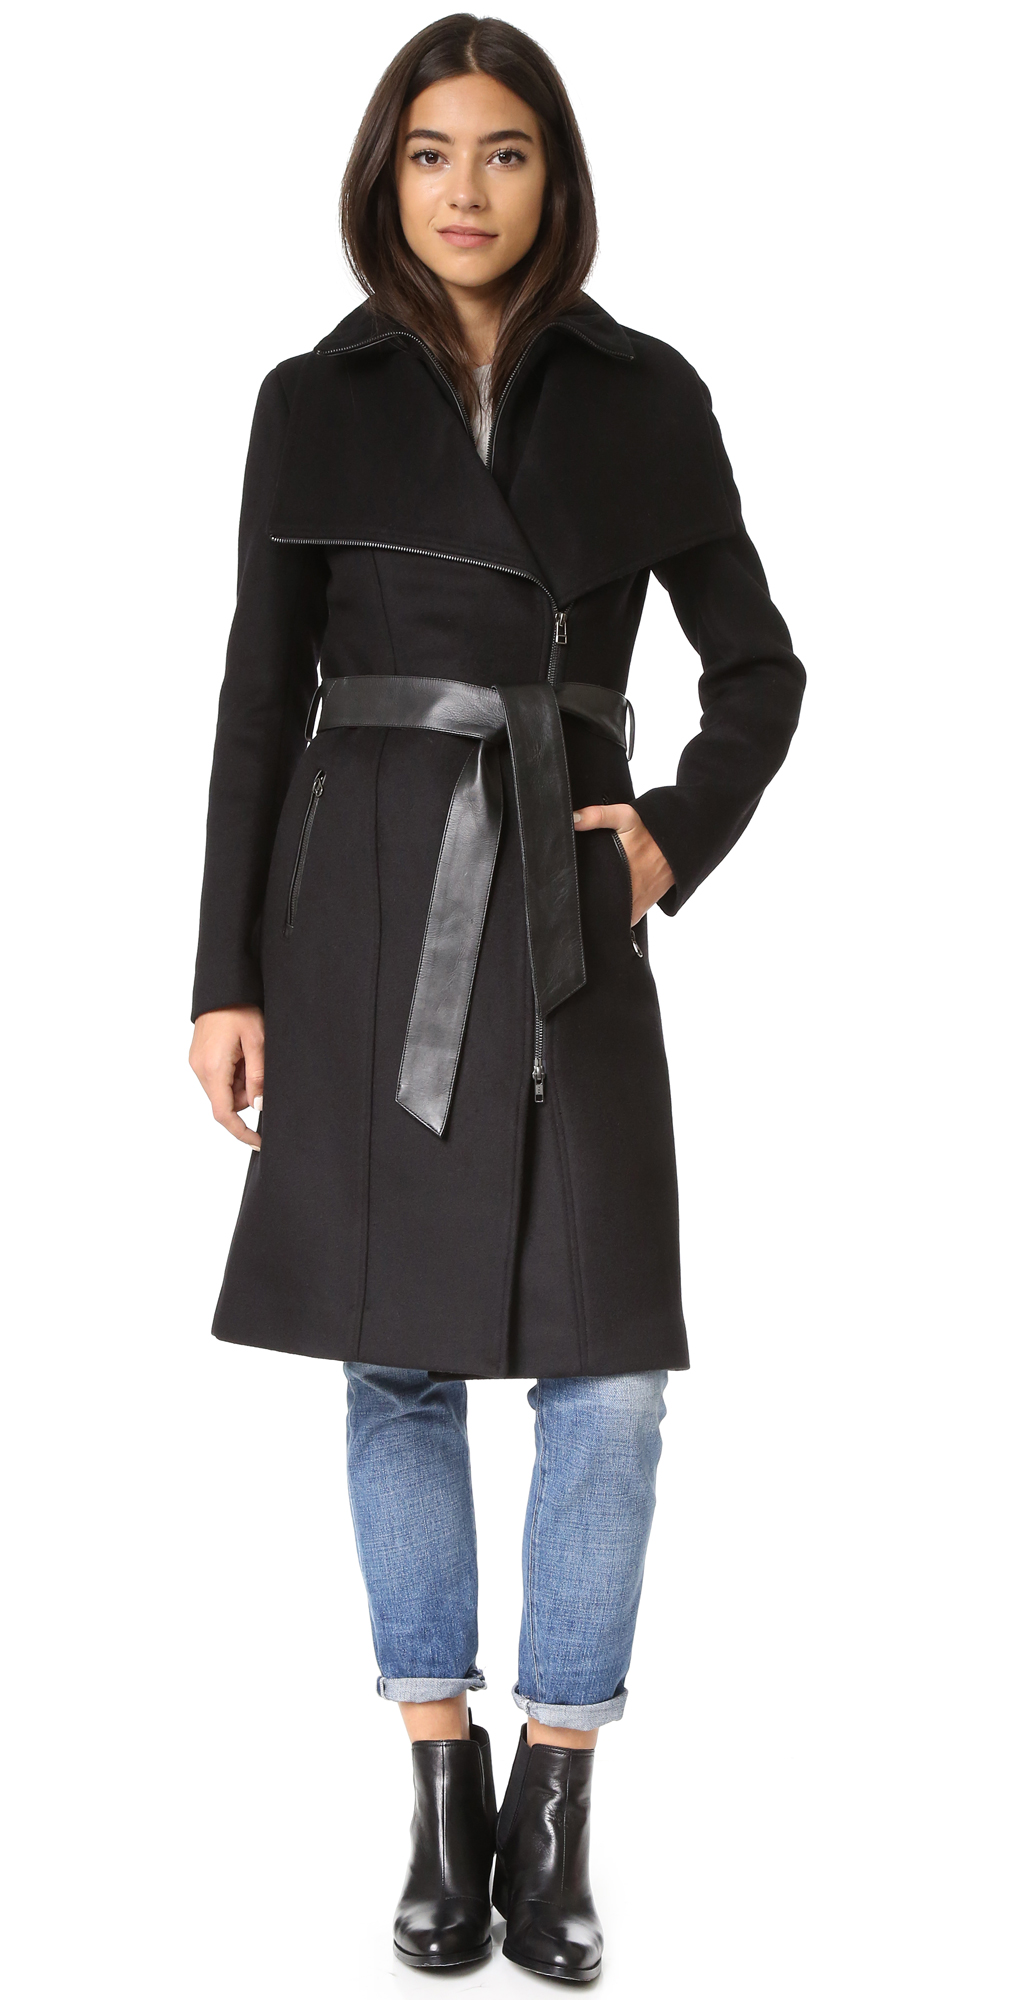 Nori Coat Mackage